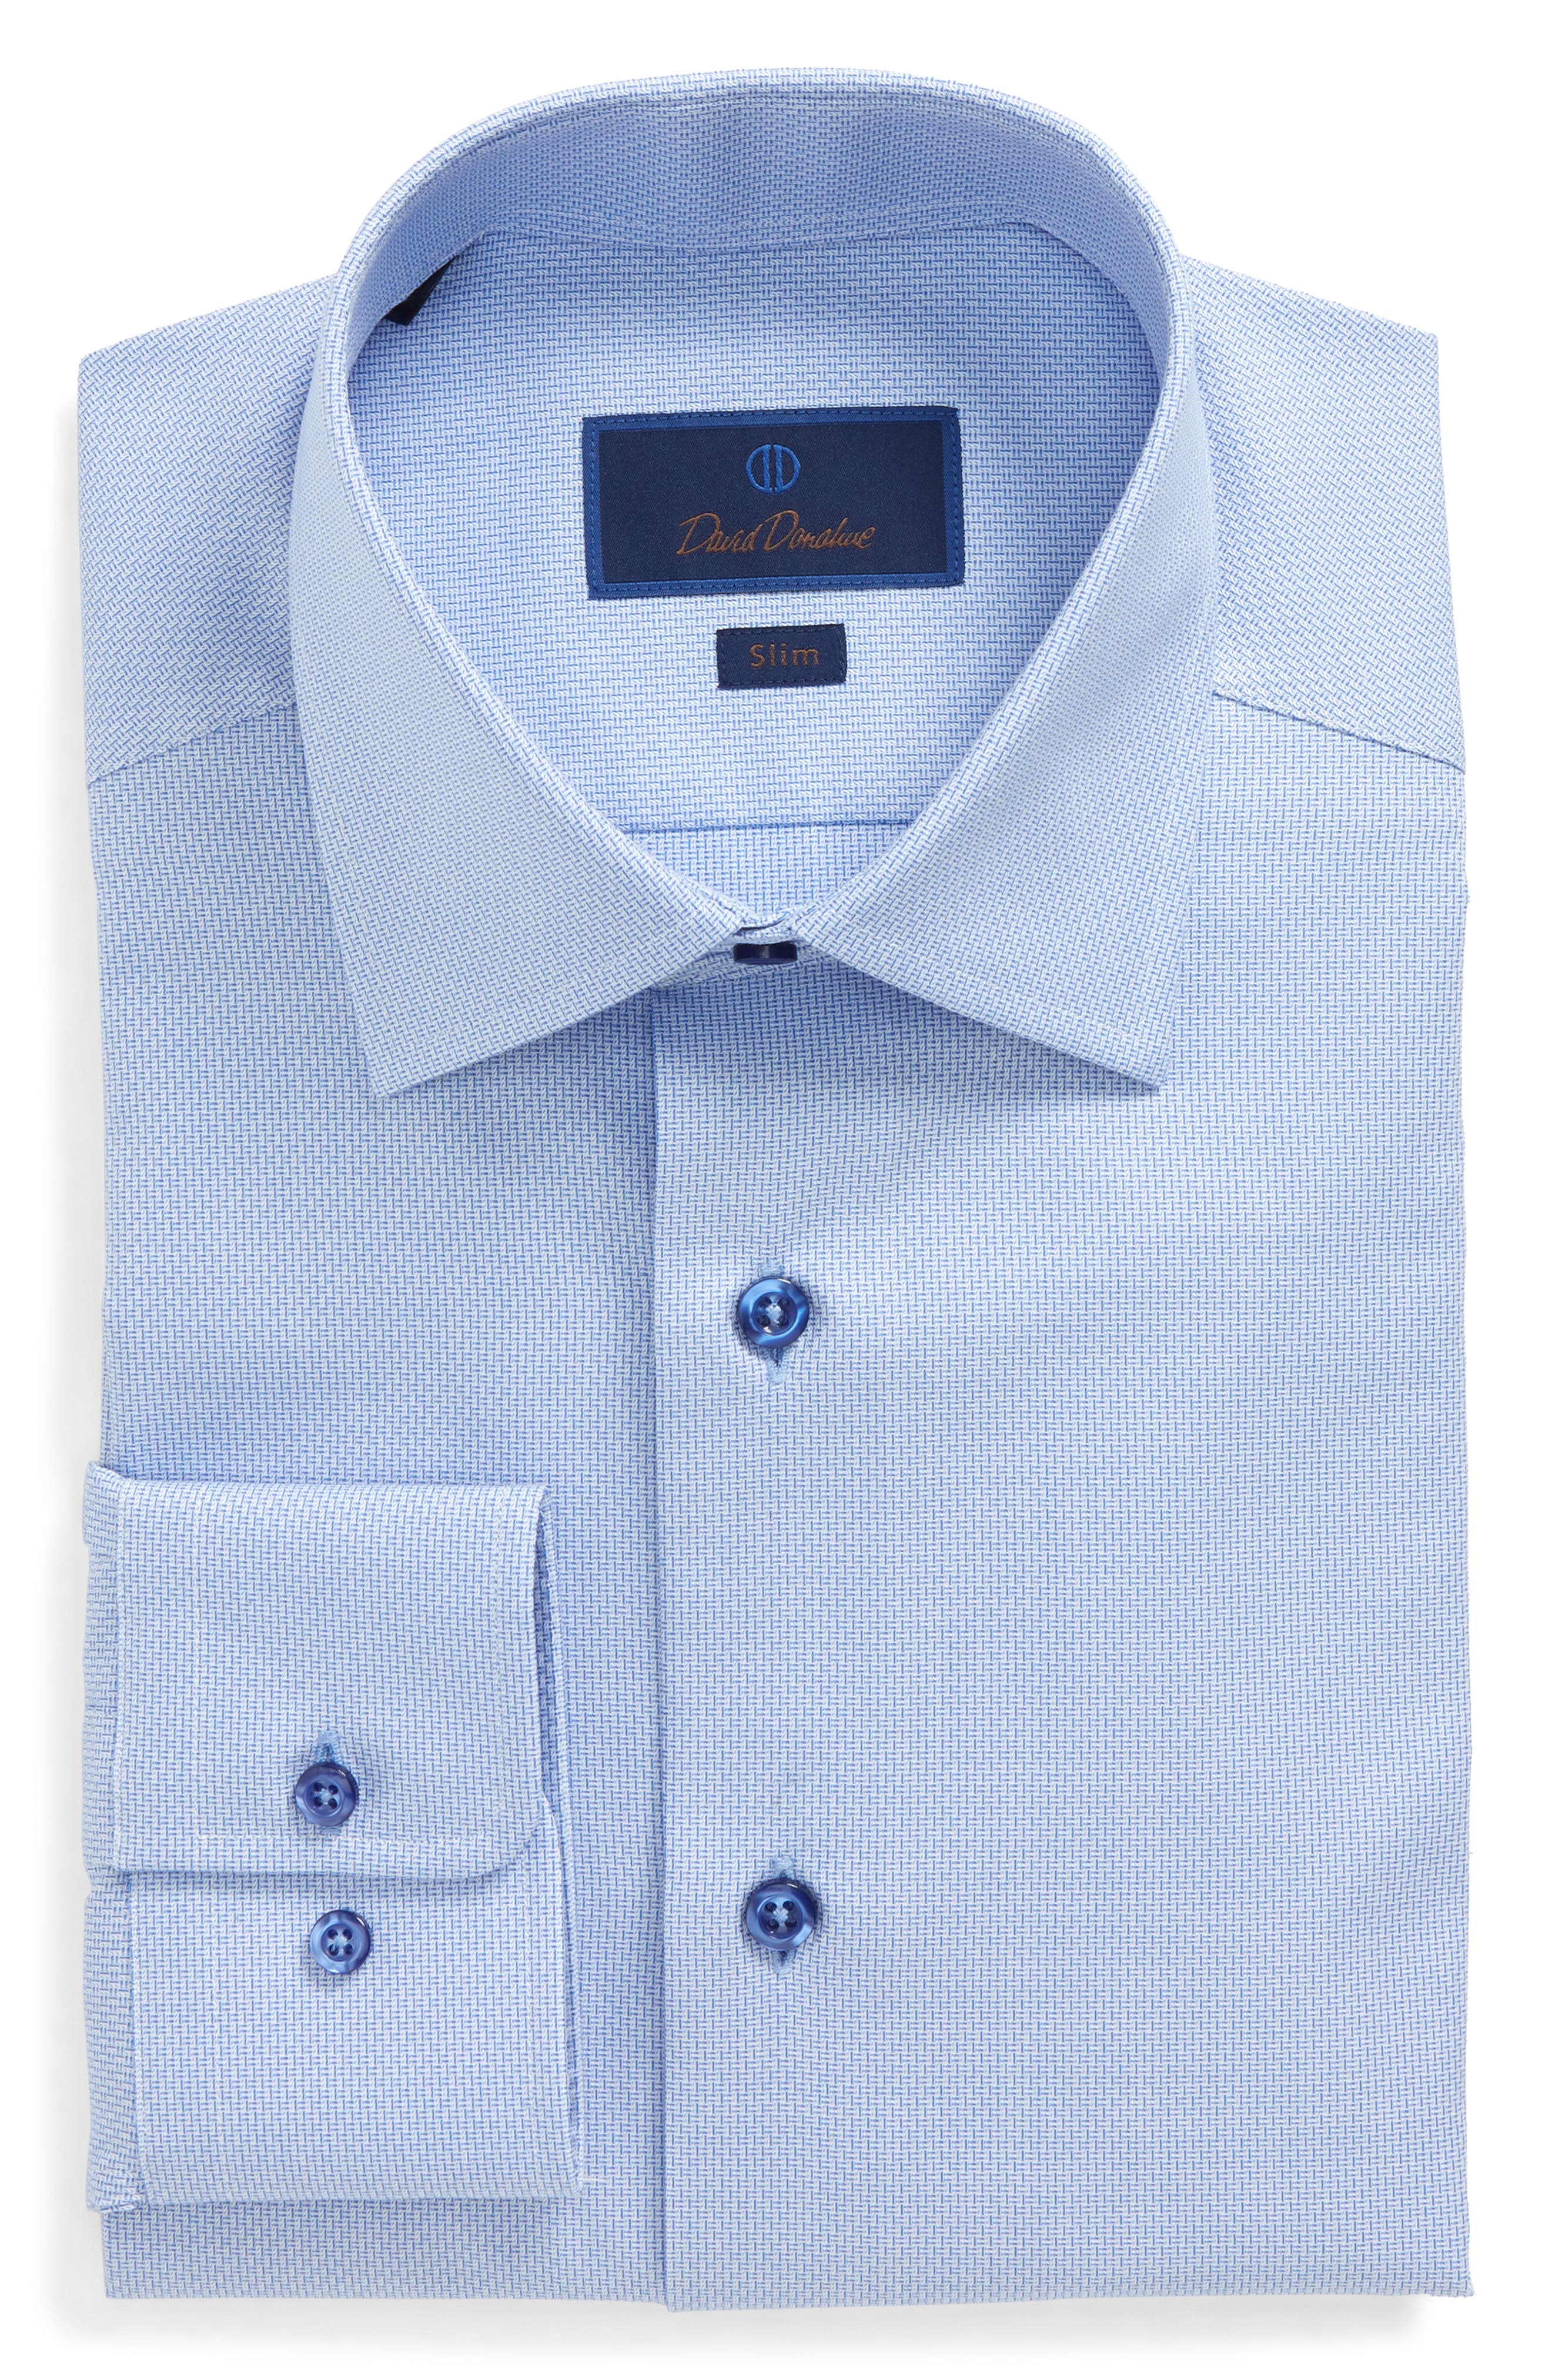 Slim Fit Solid Dress Shirt,                             Alternate thumbnail 5, color,                             423